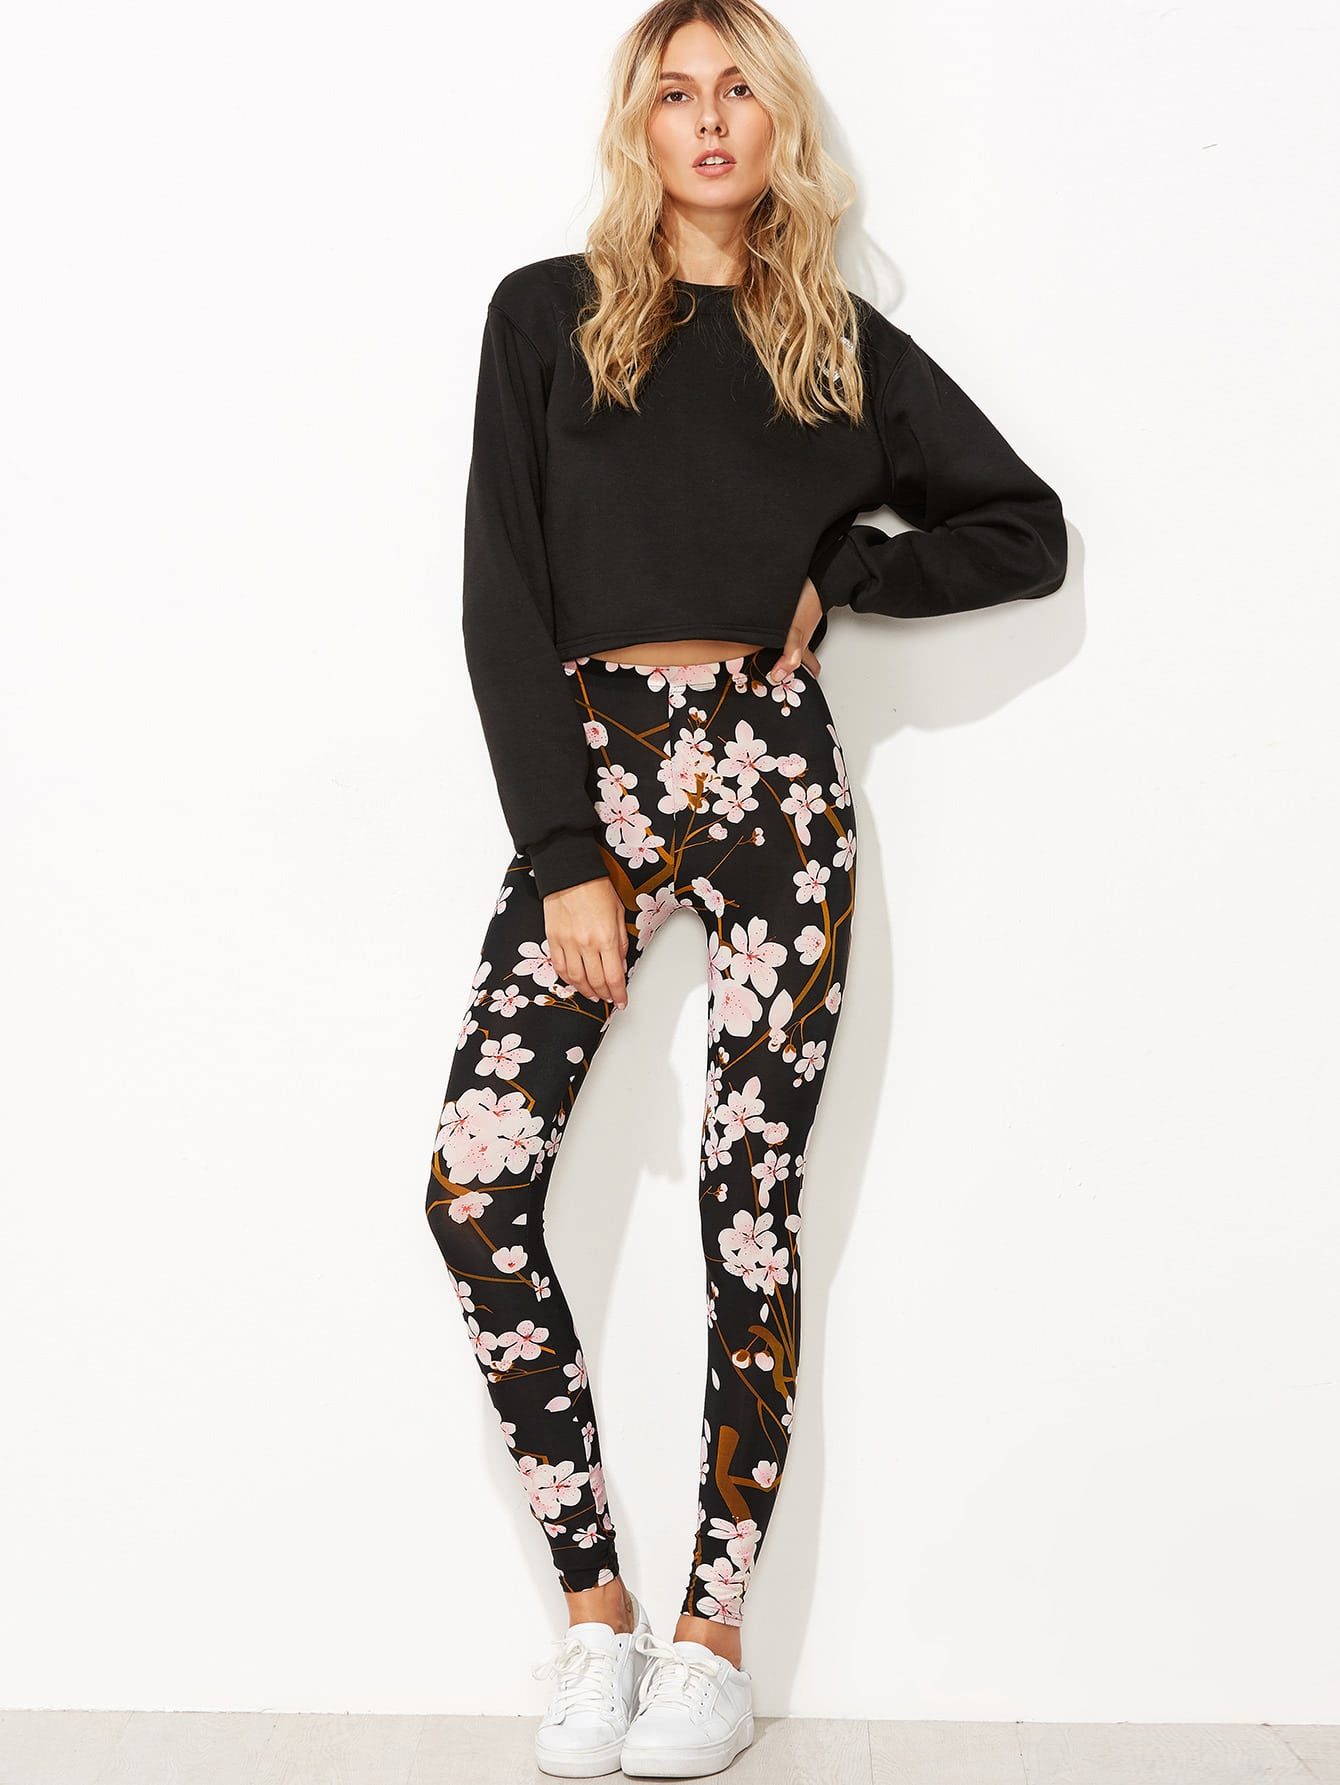 Find black floral leggings at ShopStyle. Shop the latest collection of black floral leggings from the most popular stores - all in one place.